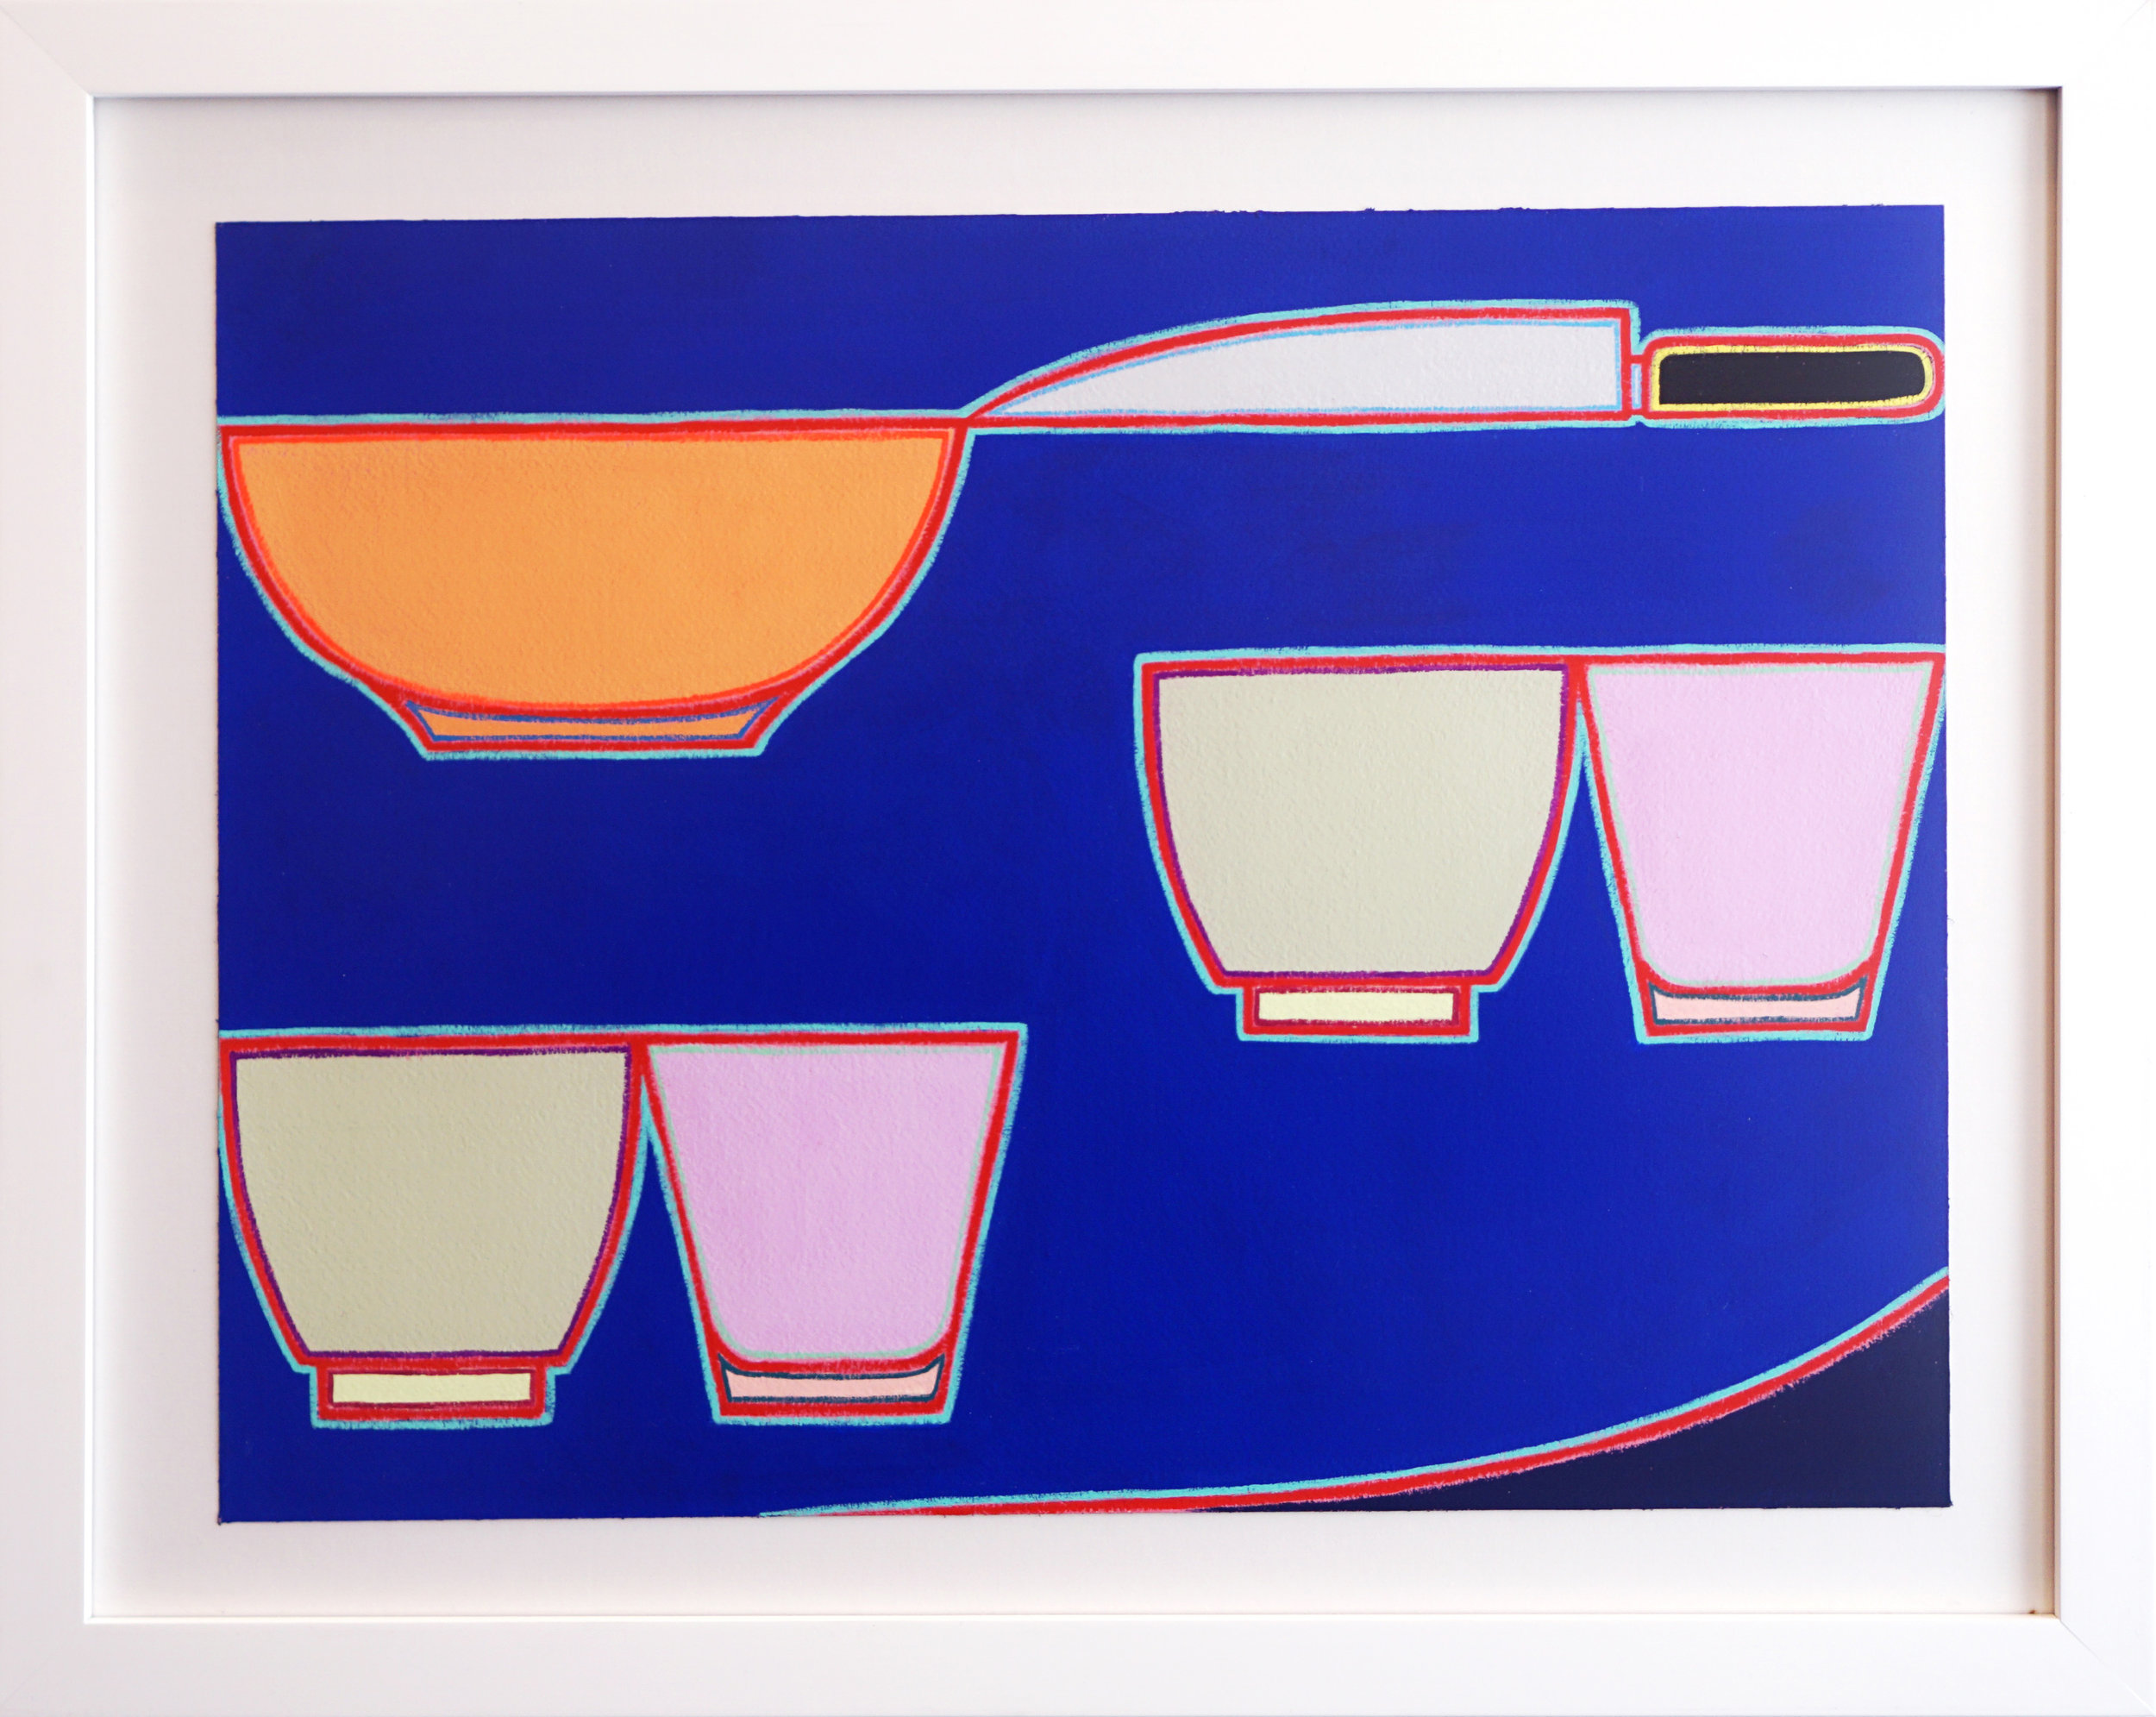 """Holly Coulis, """"Bowl, Knife"""", 2017, Gouache on arches paper, 12 x 16 in"""